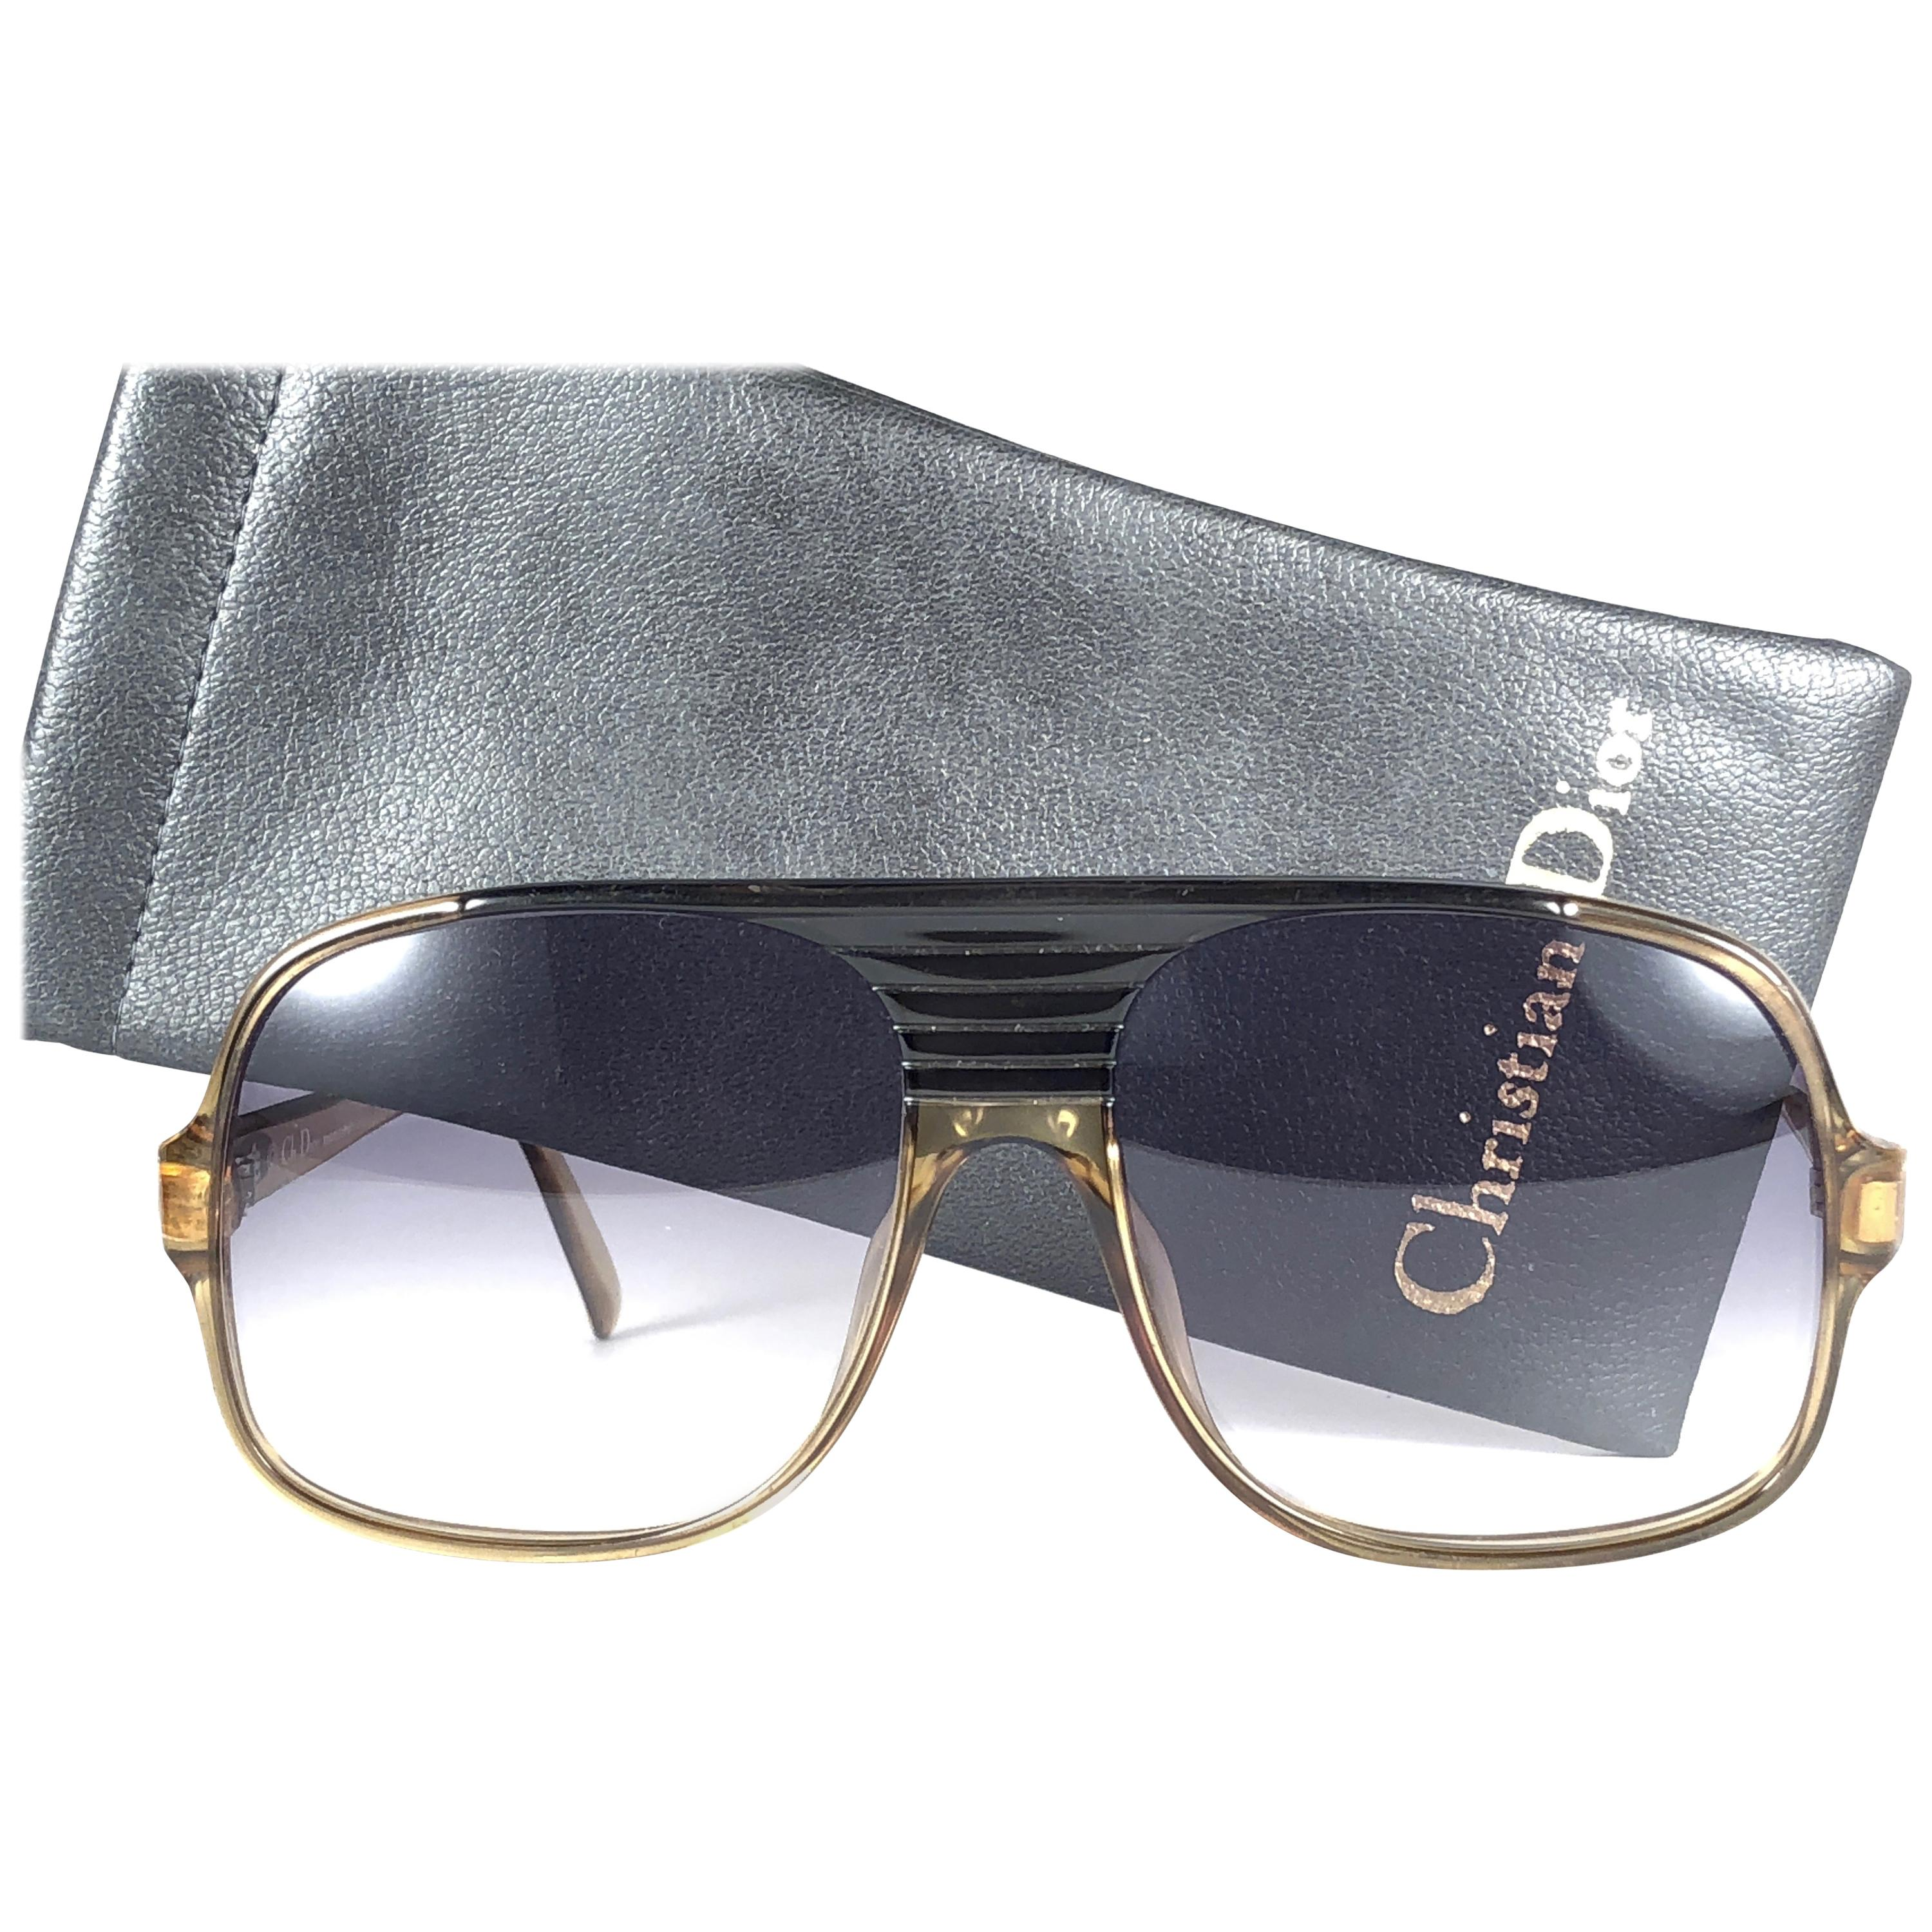 8bdb26999a6 New Vintage Christian Dior Monsieur 2059 11 Optyl Blue Gradient 1970  Sunglasses For Sale at 1stdibs